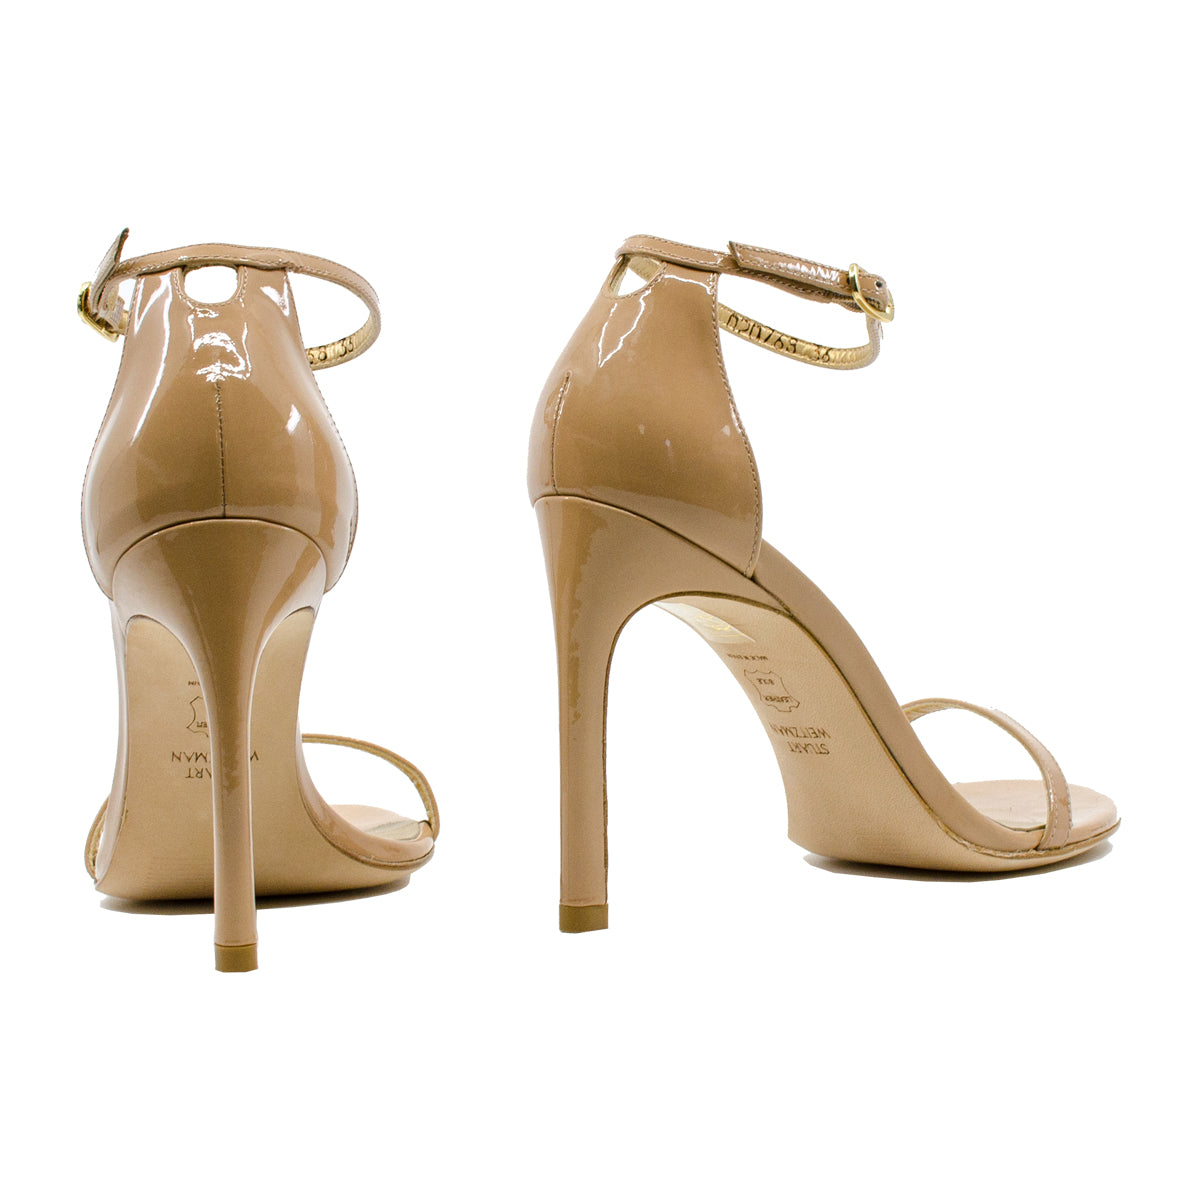 Nudistsong Patent Leather Sandals